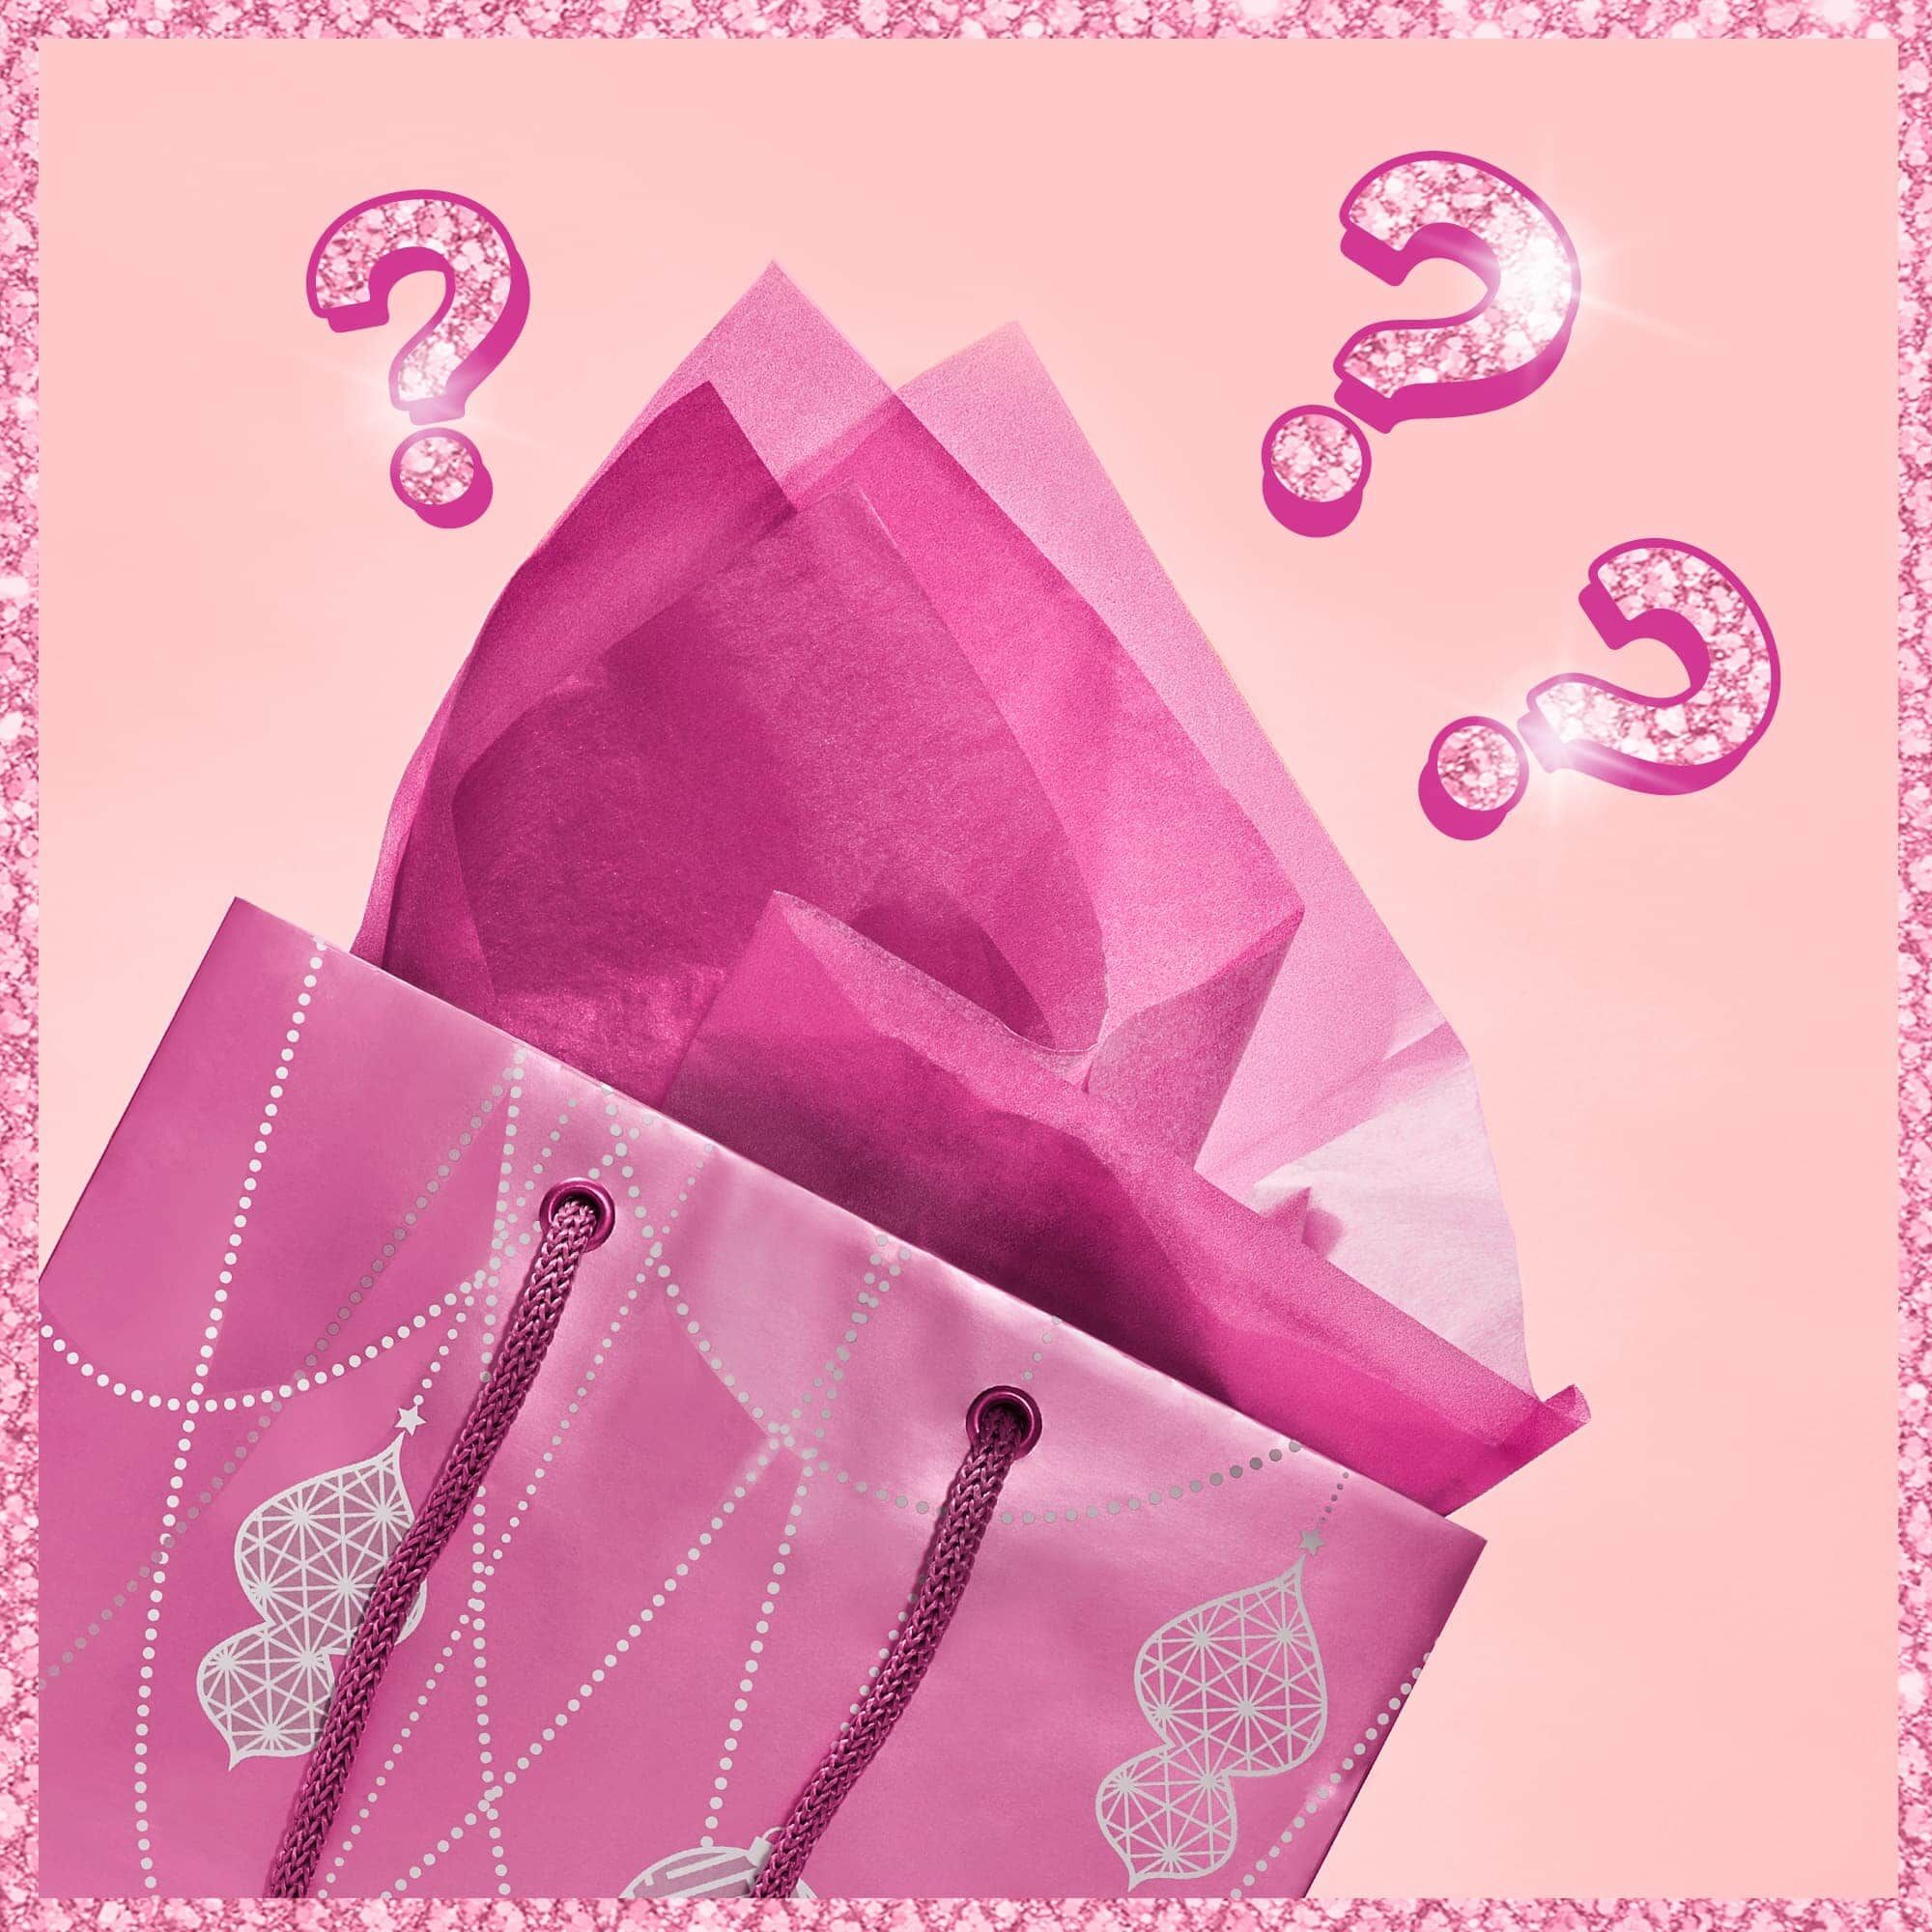 Tarte Cyber Monday Mixup Mystery Discovery Set Available Now!